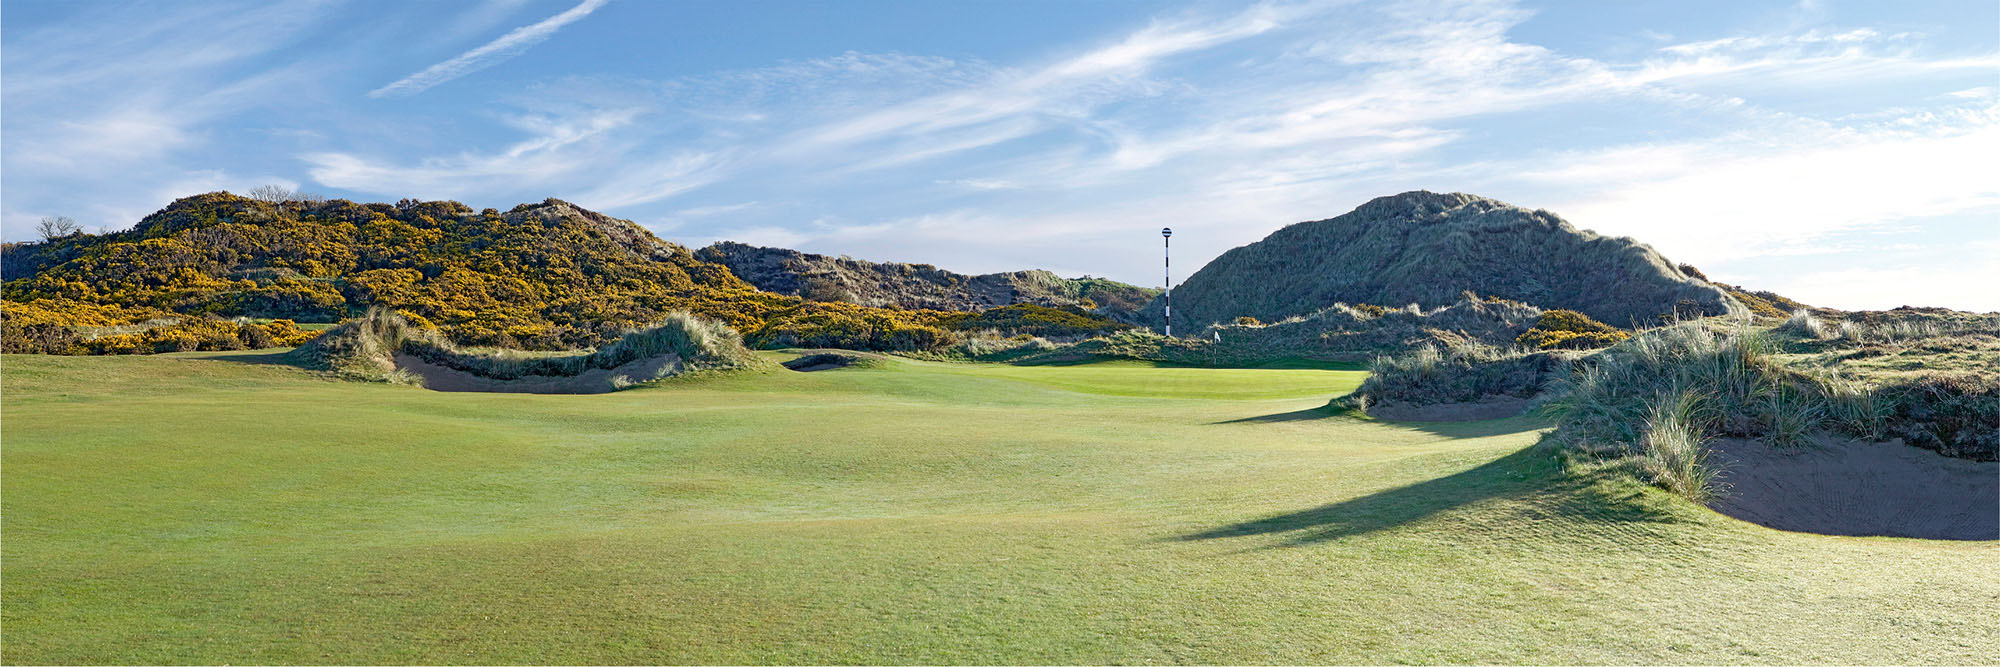 Golf Course Image - Royal County Down No. 3